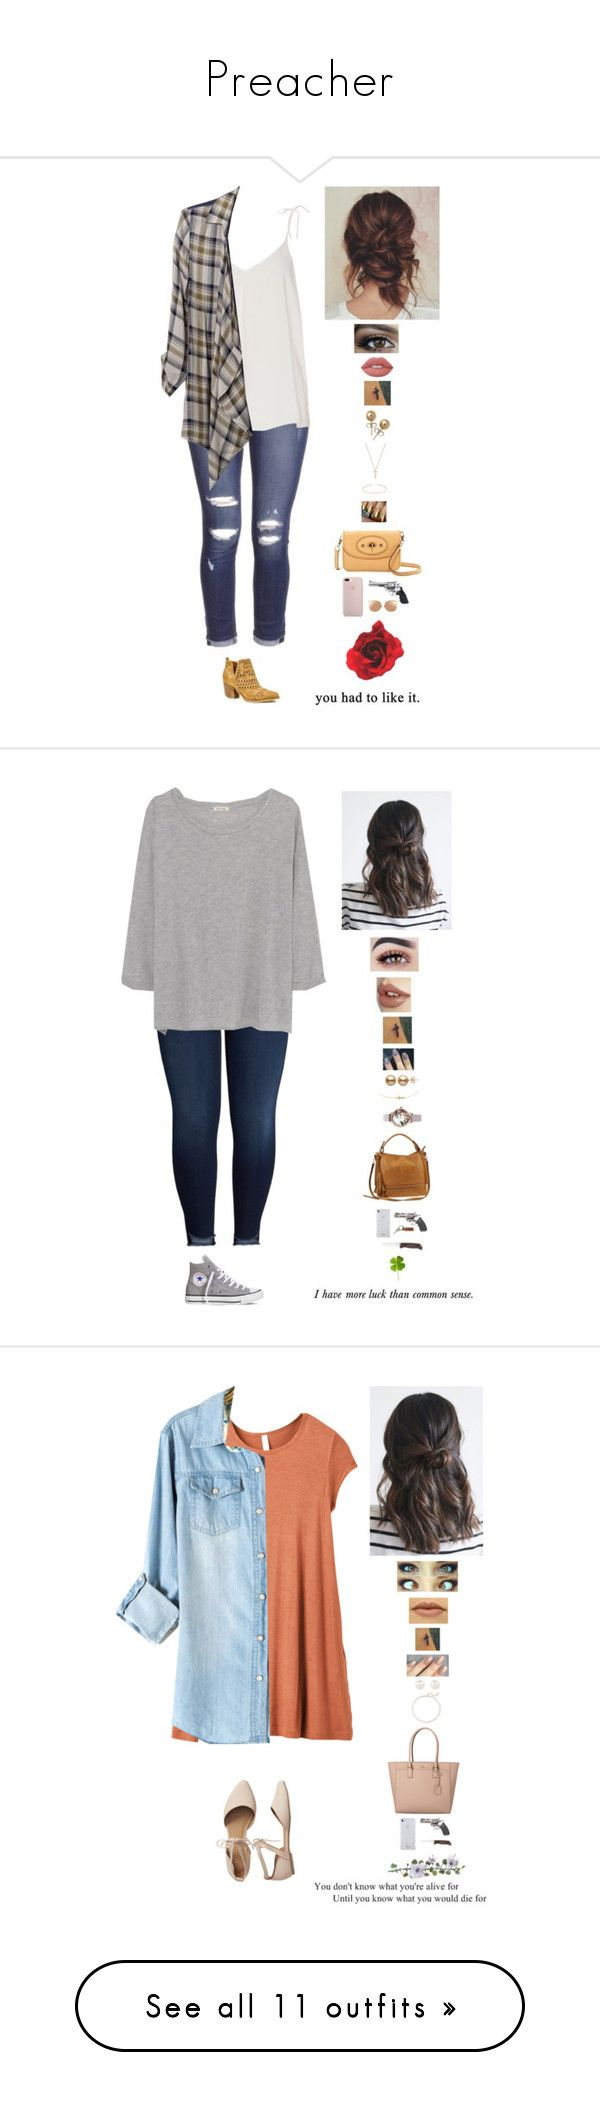 """""""Preacher"""" by mollyr5 ❤ liked on Polyvore featuring River Island, mi.im, Daytrip, Lime Crime, Bling Jewelry, Gucci, UGG Australia, Revolver, Linda Farrow and KUT from the Kloth"""